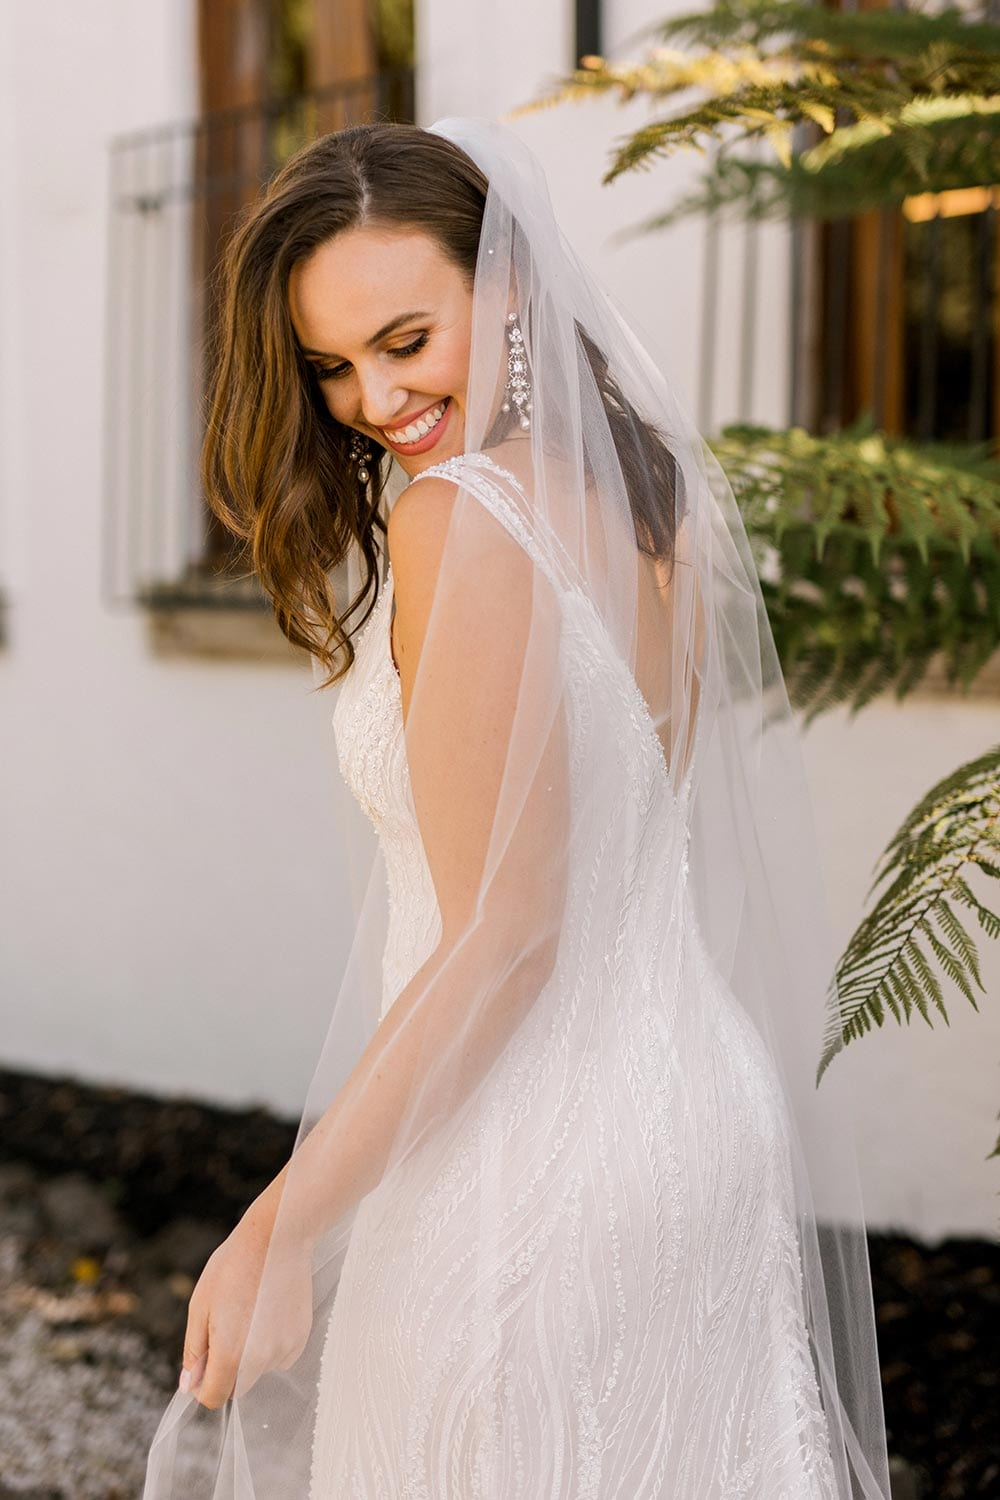 Kiera Wedding Dress from Vinka Design. Beautifully beaded lace wedding dress. Deep V-neckline both front and back is complemented with delicate sheer lace shoulder detail & structured bodice. Close up detail of dress from the side. Photographed at Tui Hills.